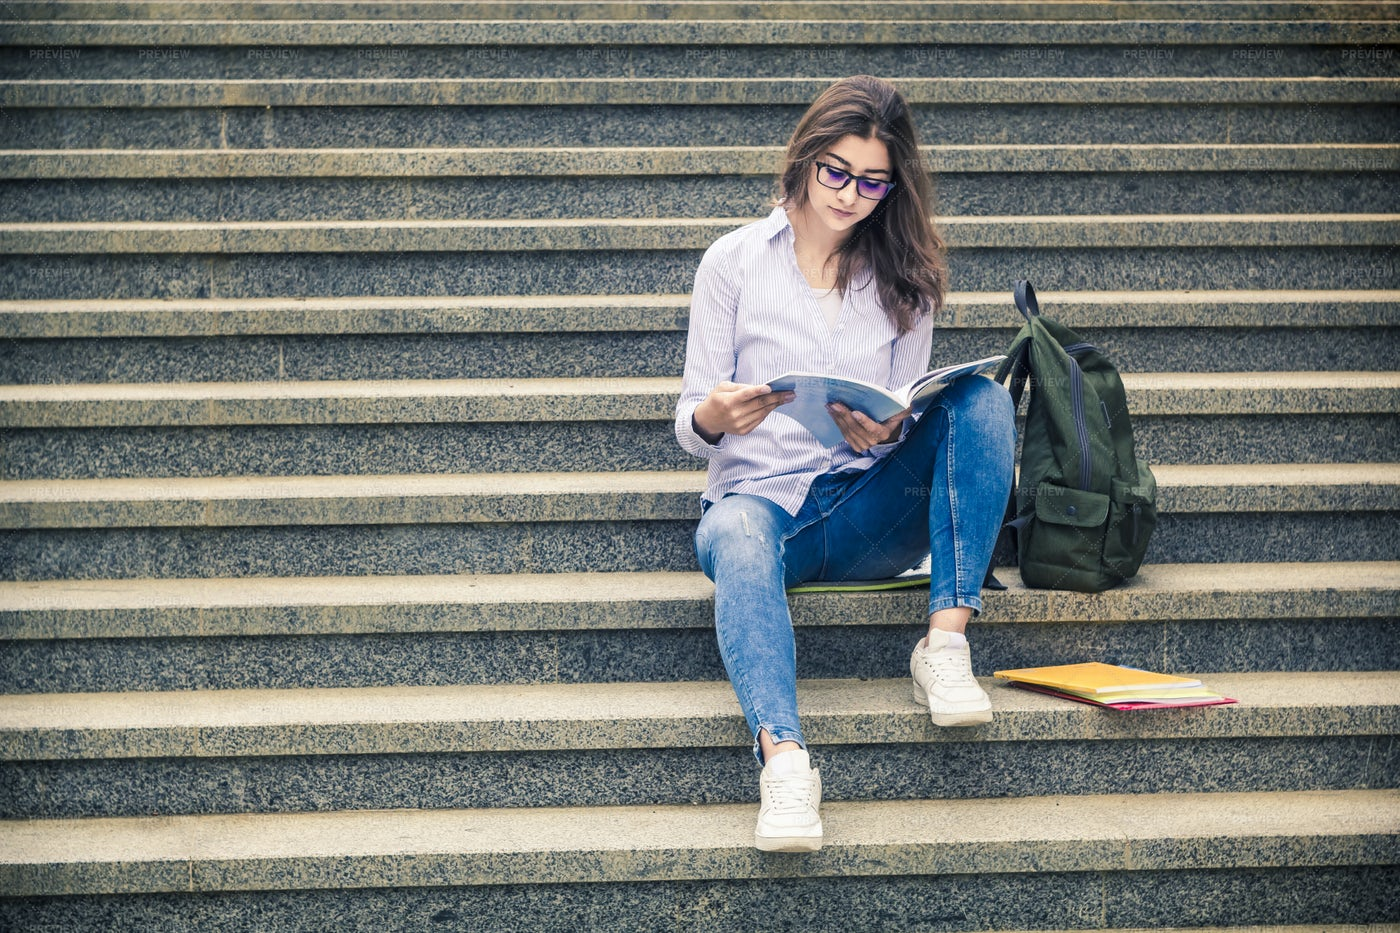 Student Sit On  Steps: Stock Photos